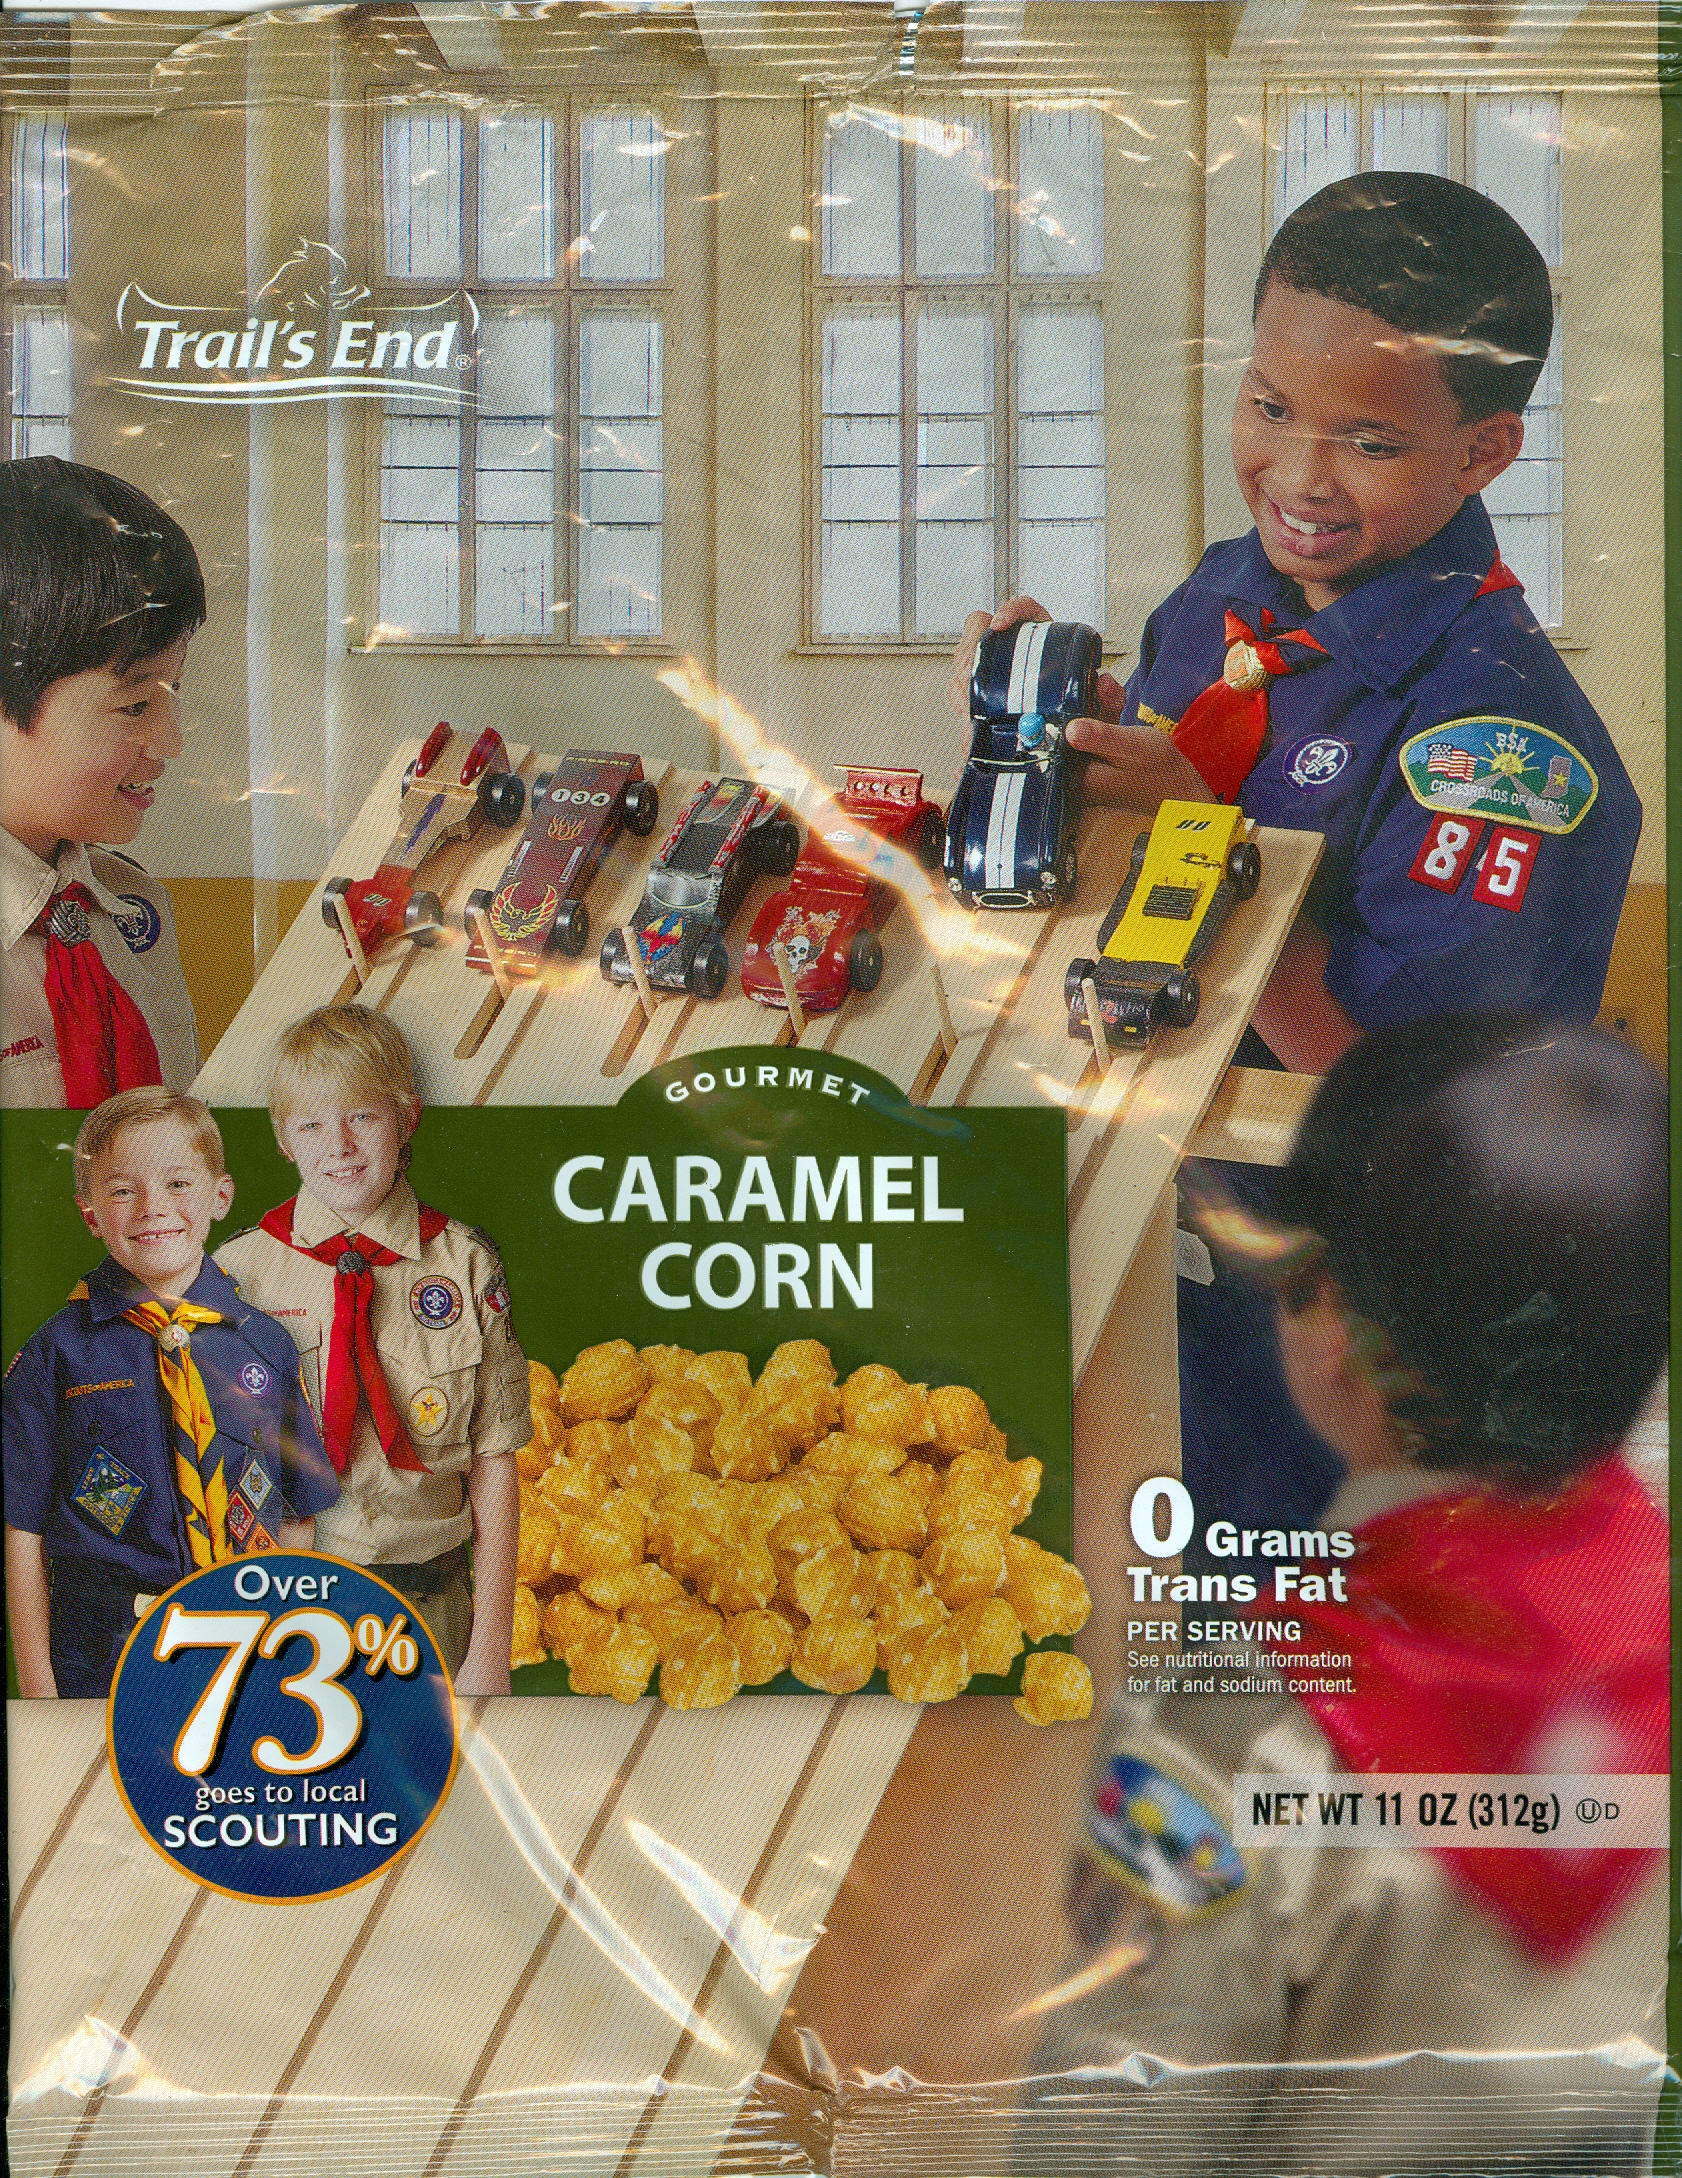 The Trail's End Gourmet Caramel Corn for Scouting